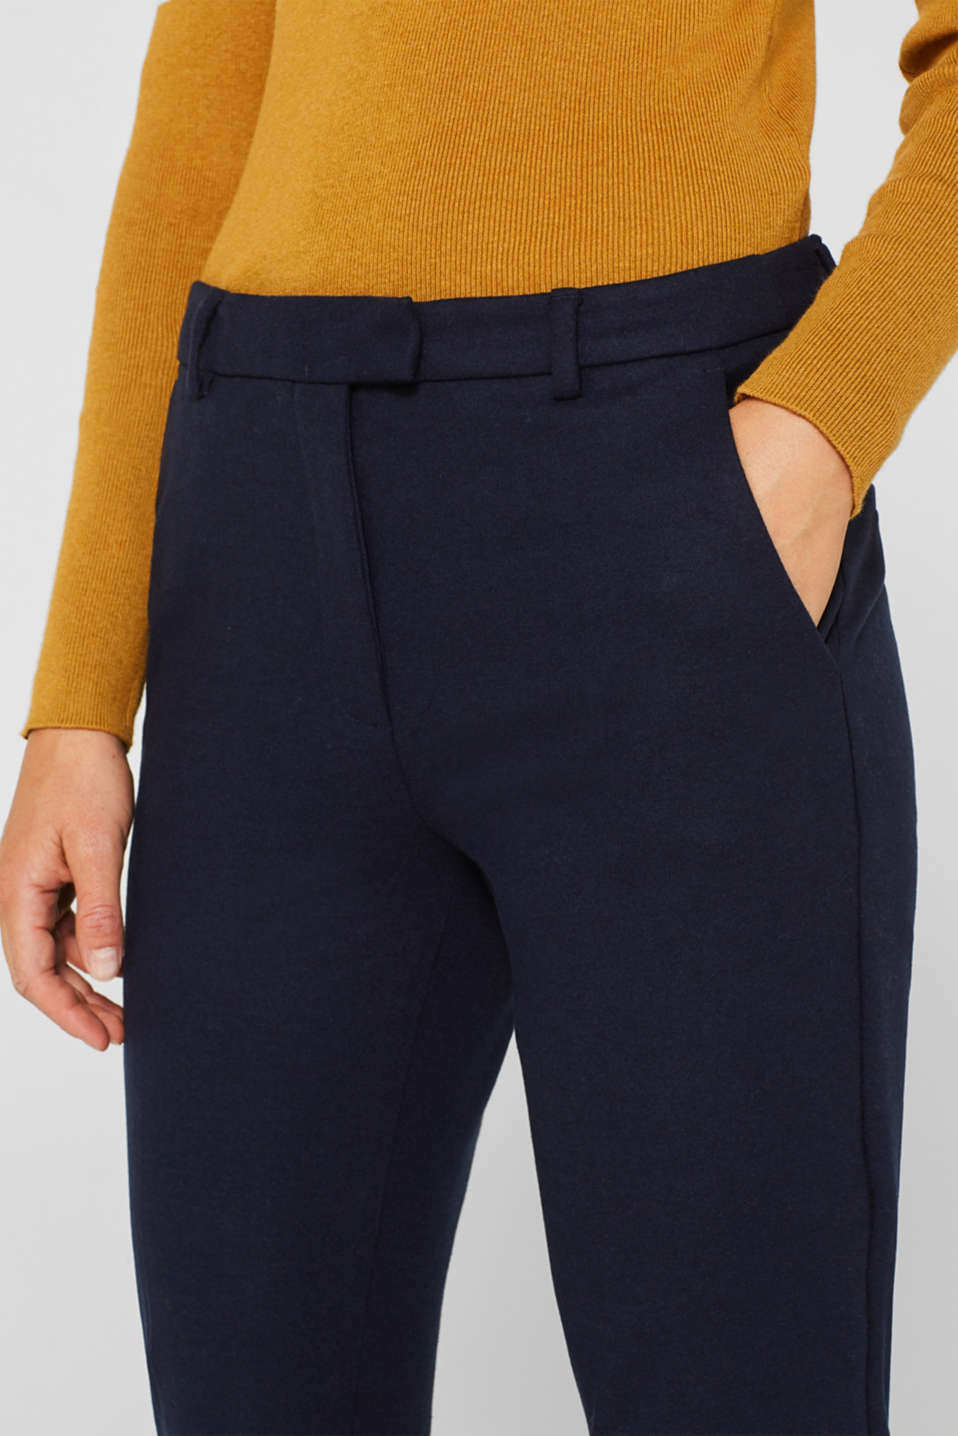 Pants woven, NAVY, detail image number 2